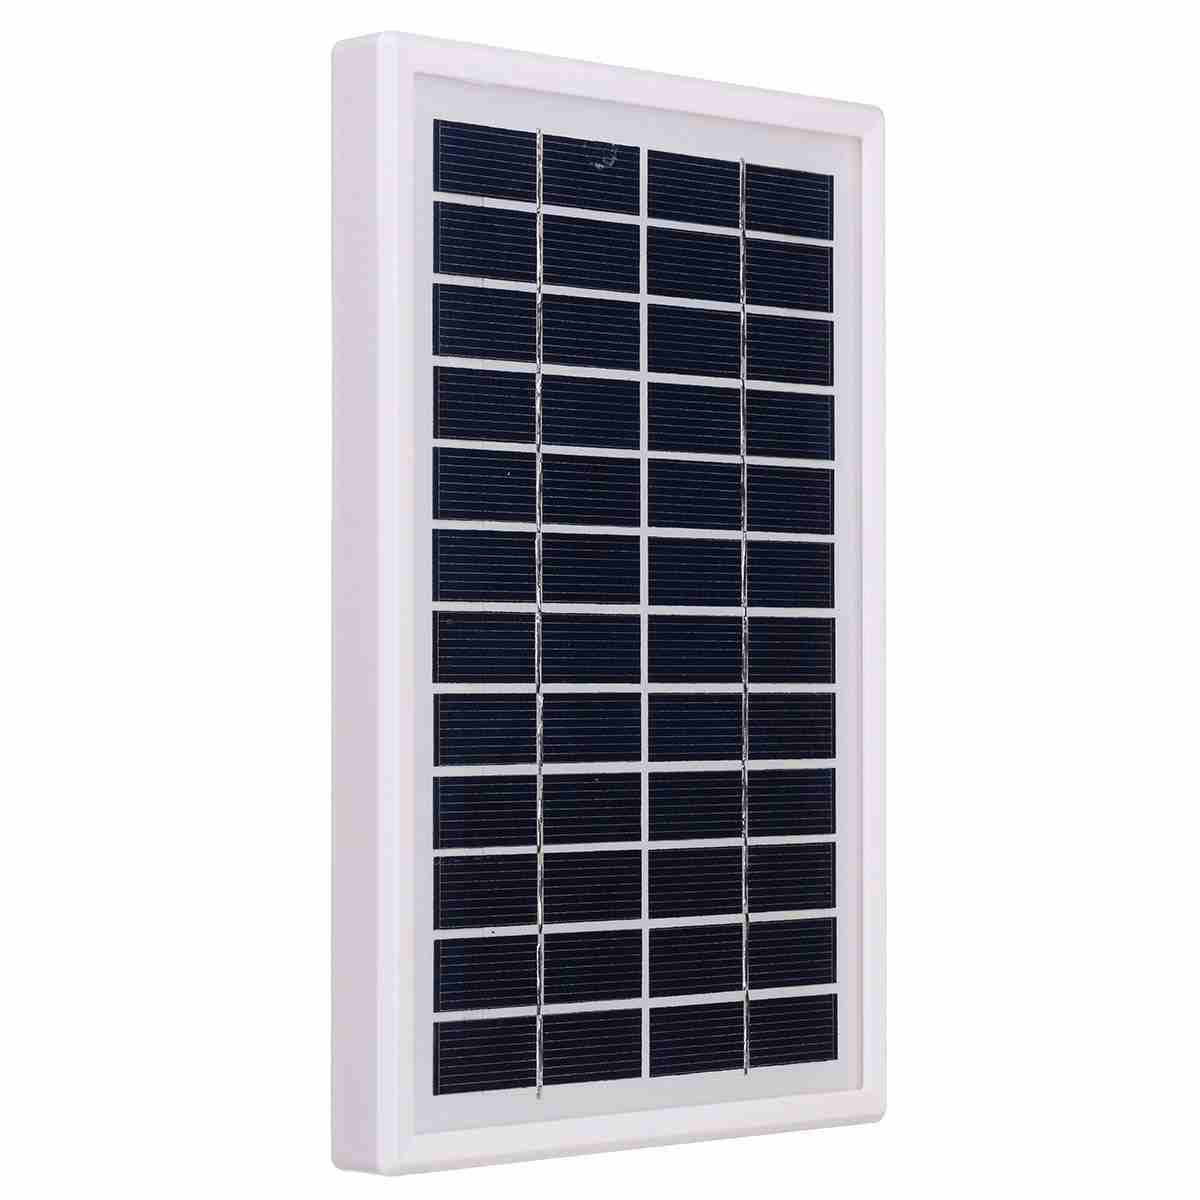 Hinergy Polycrystalline Silicon Mini Solar Panels 12V 3W DIY Powered Kit System Thumb 2